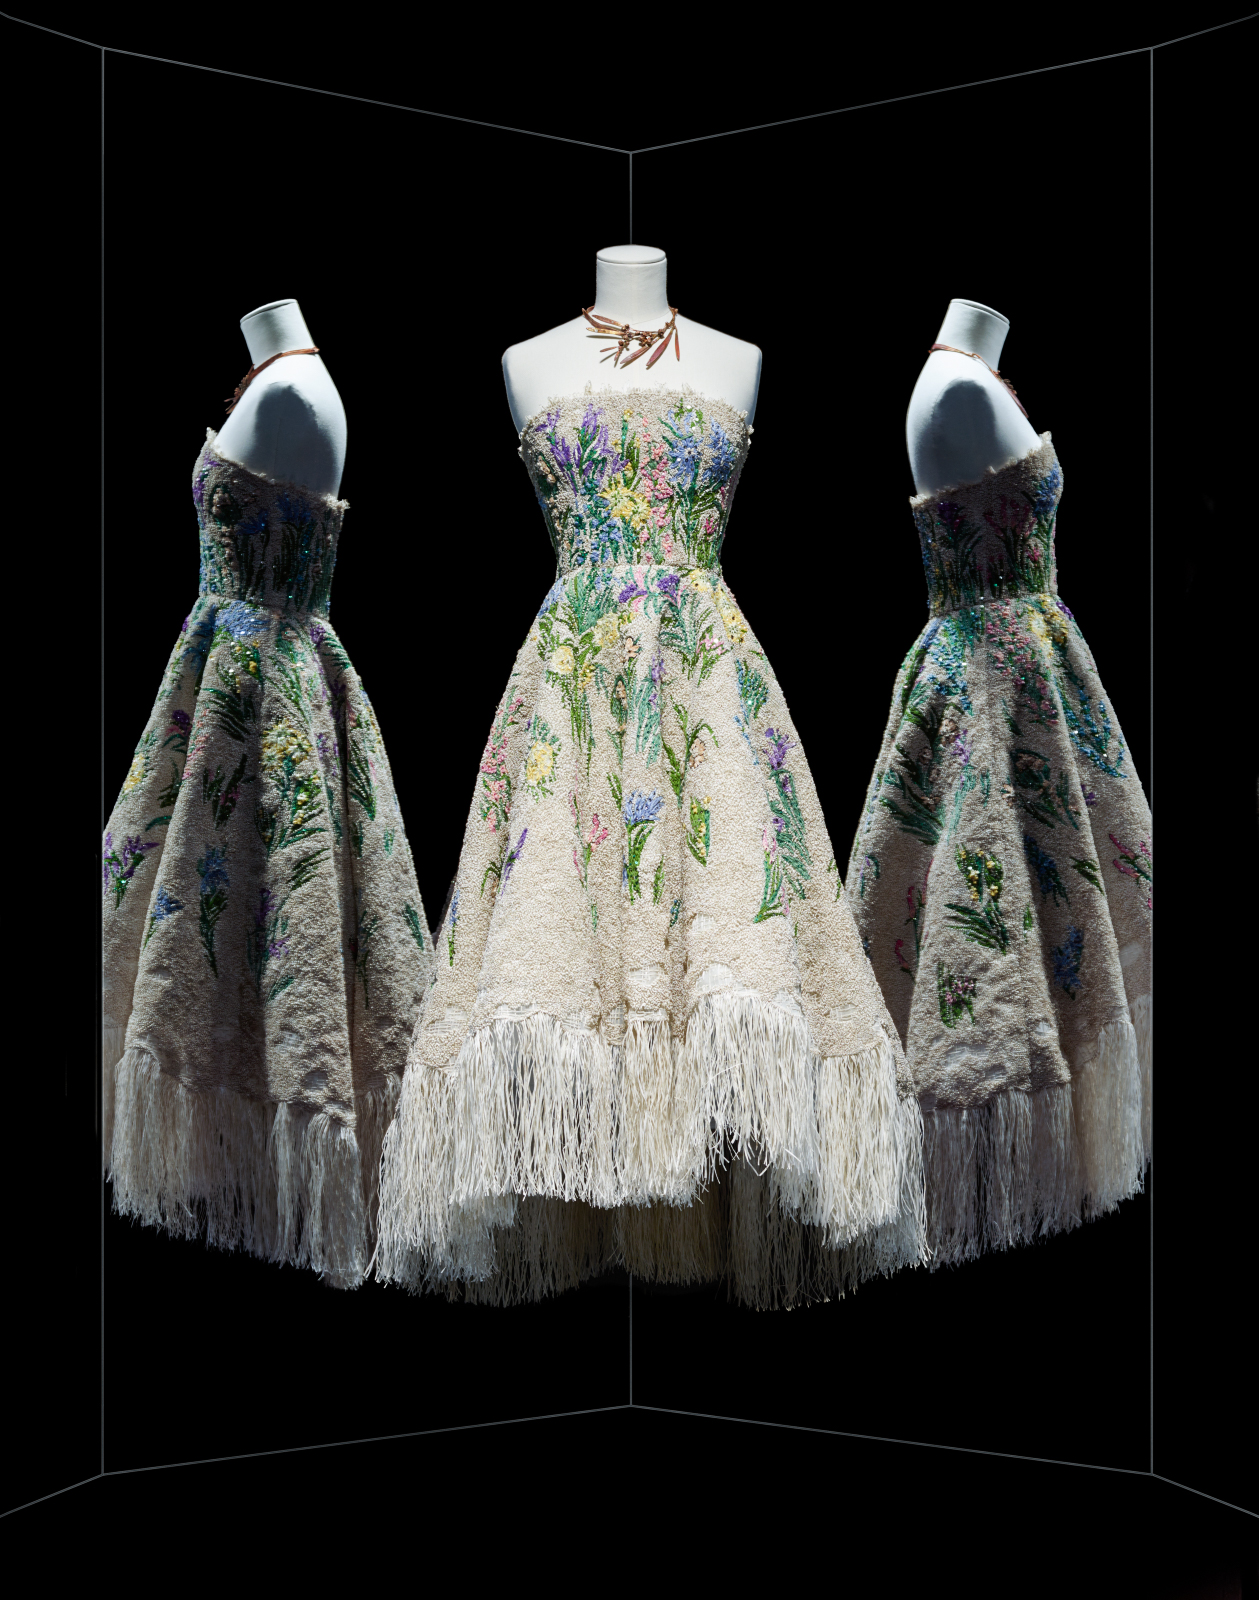 DIOR_ROBE_ESSENCE_DHERBIER_CREDITS_PHOTO_NICHOLAS_ALAN_COPE-2